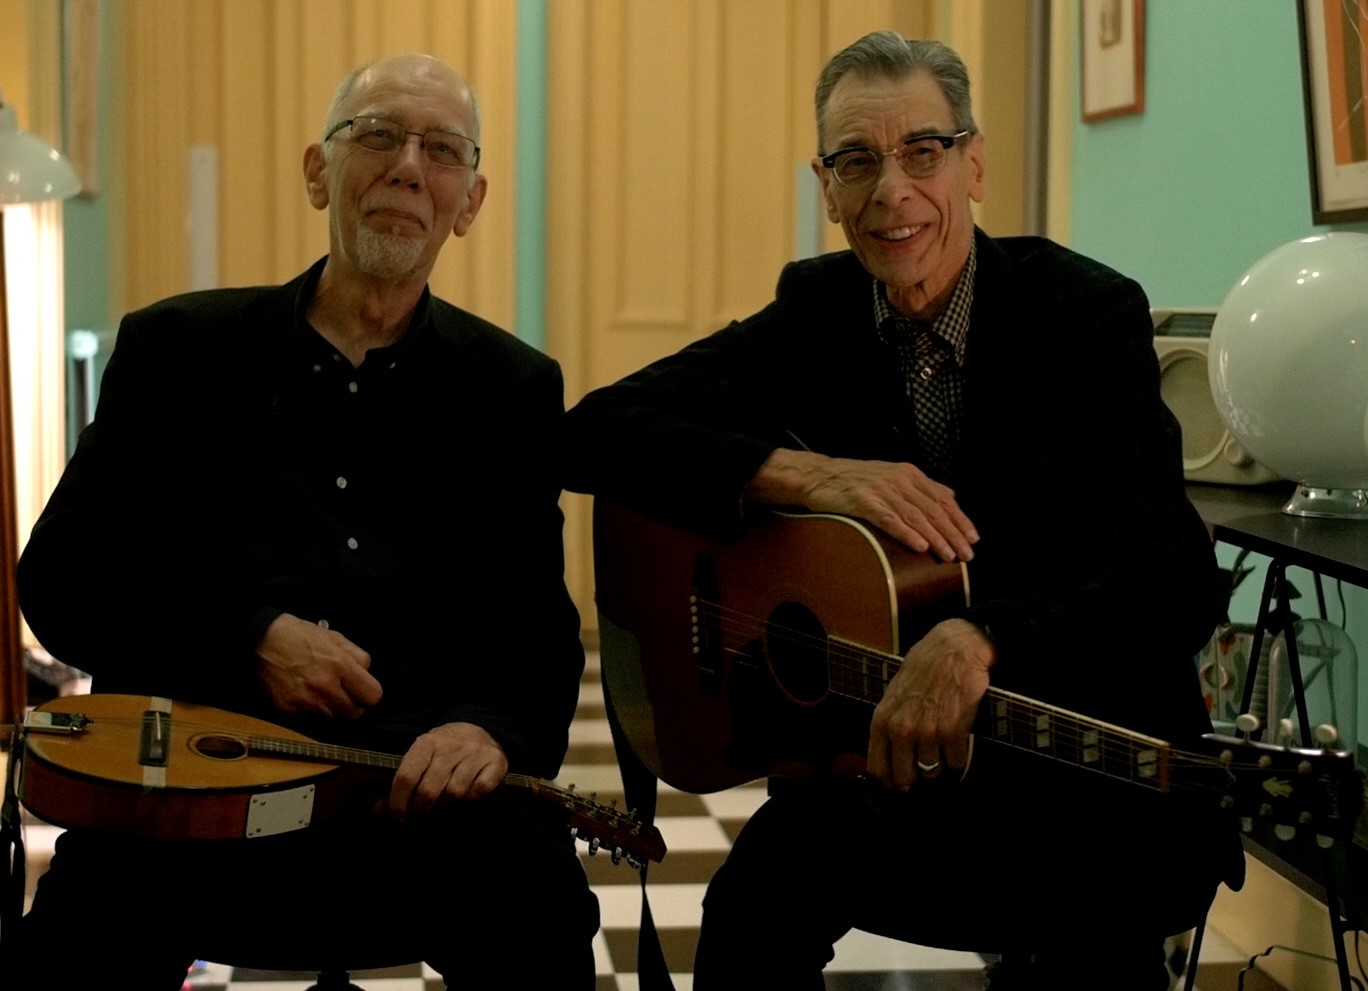 Rod Clements & Rab Noakes Return To Backstage Kinross